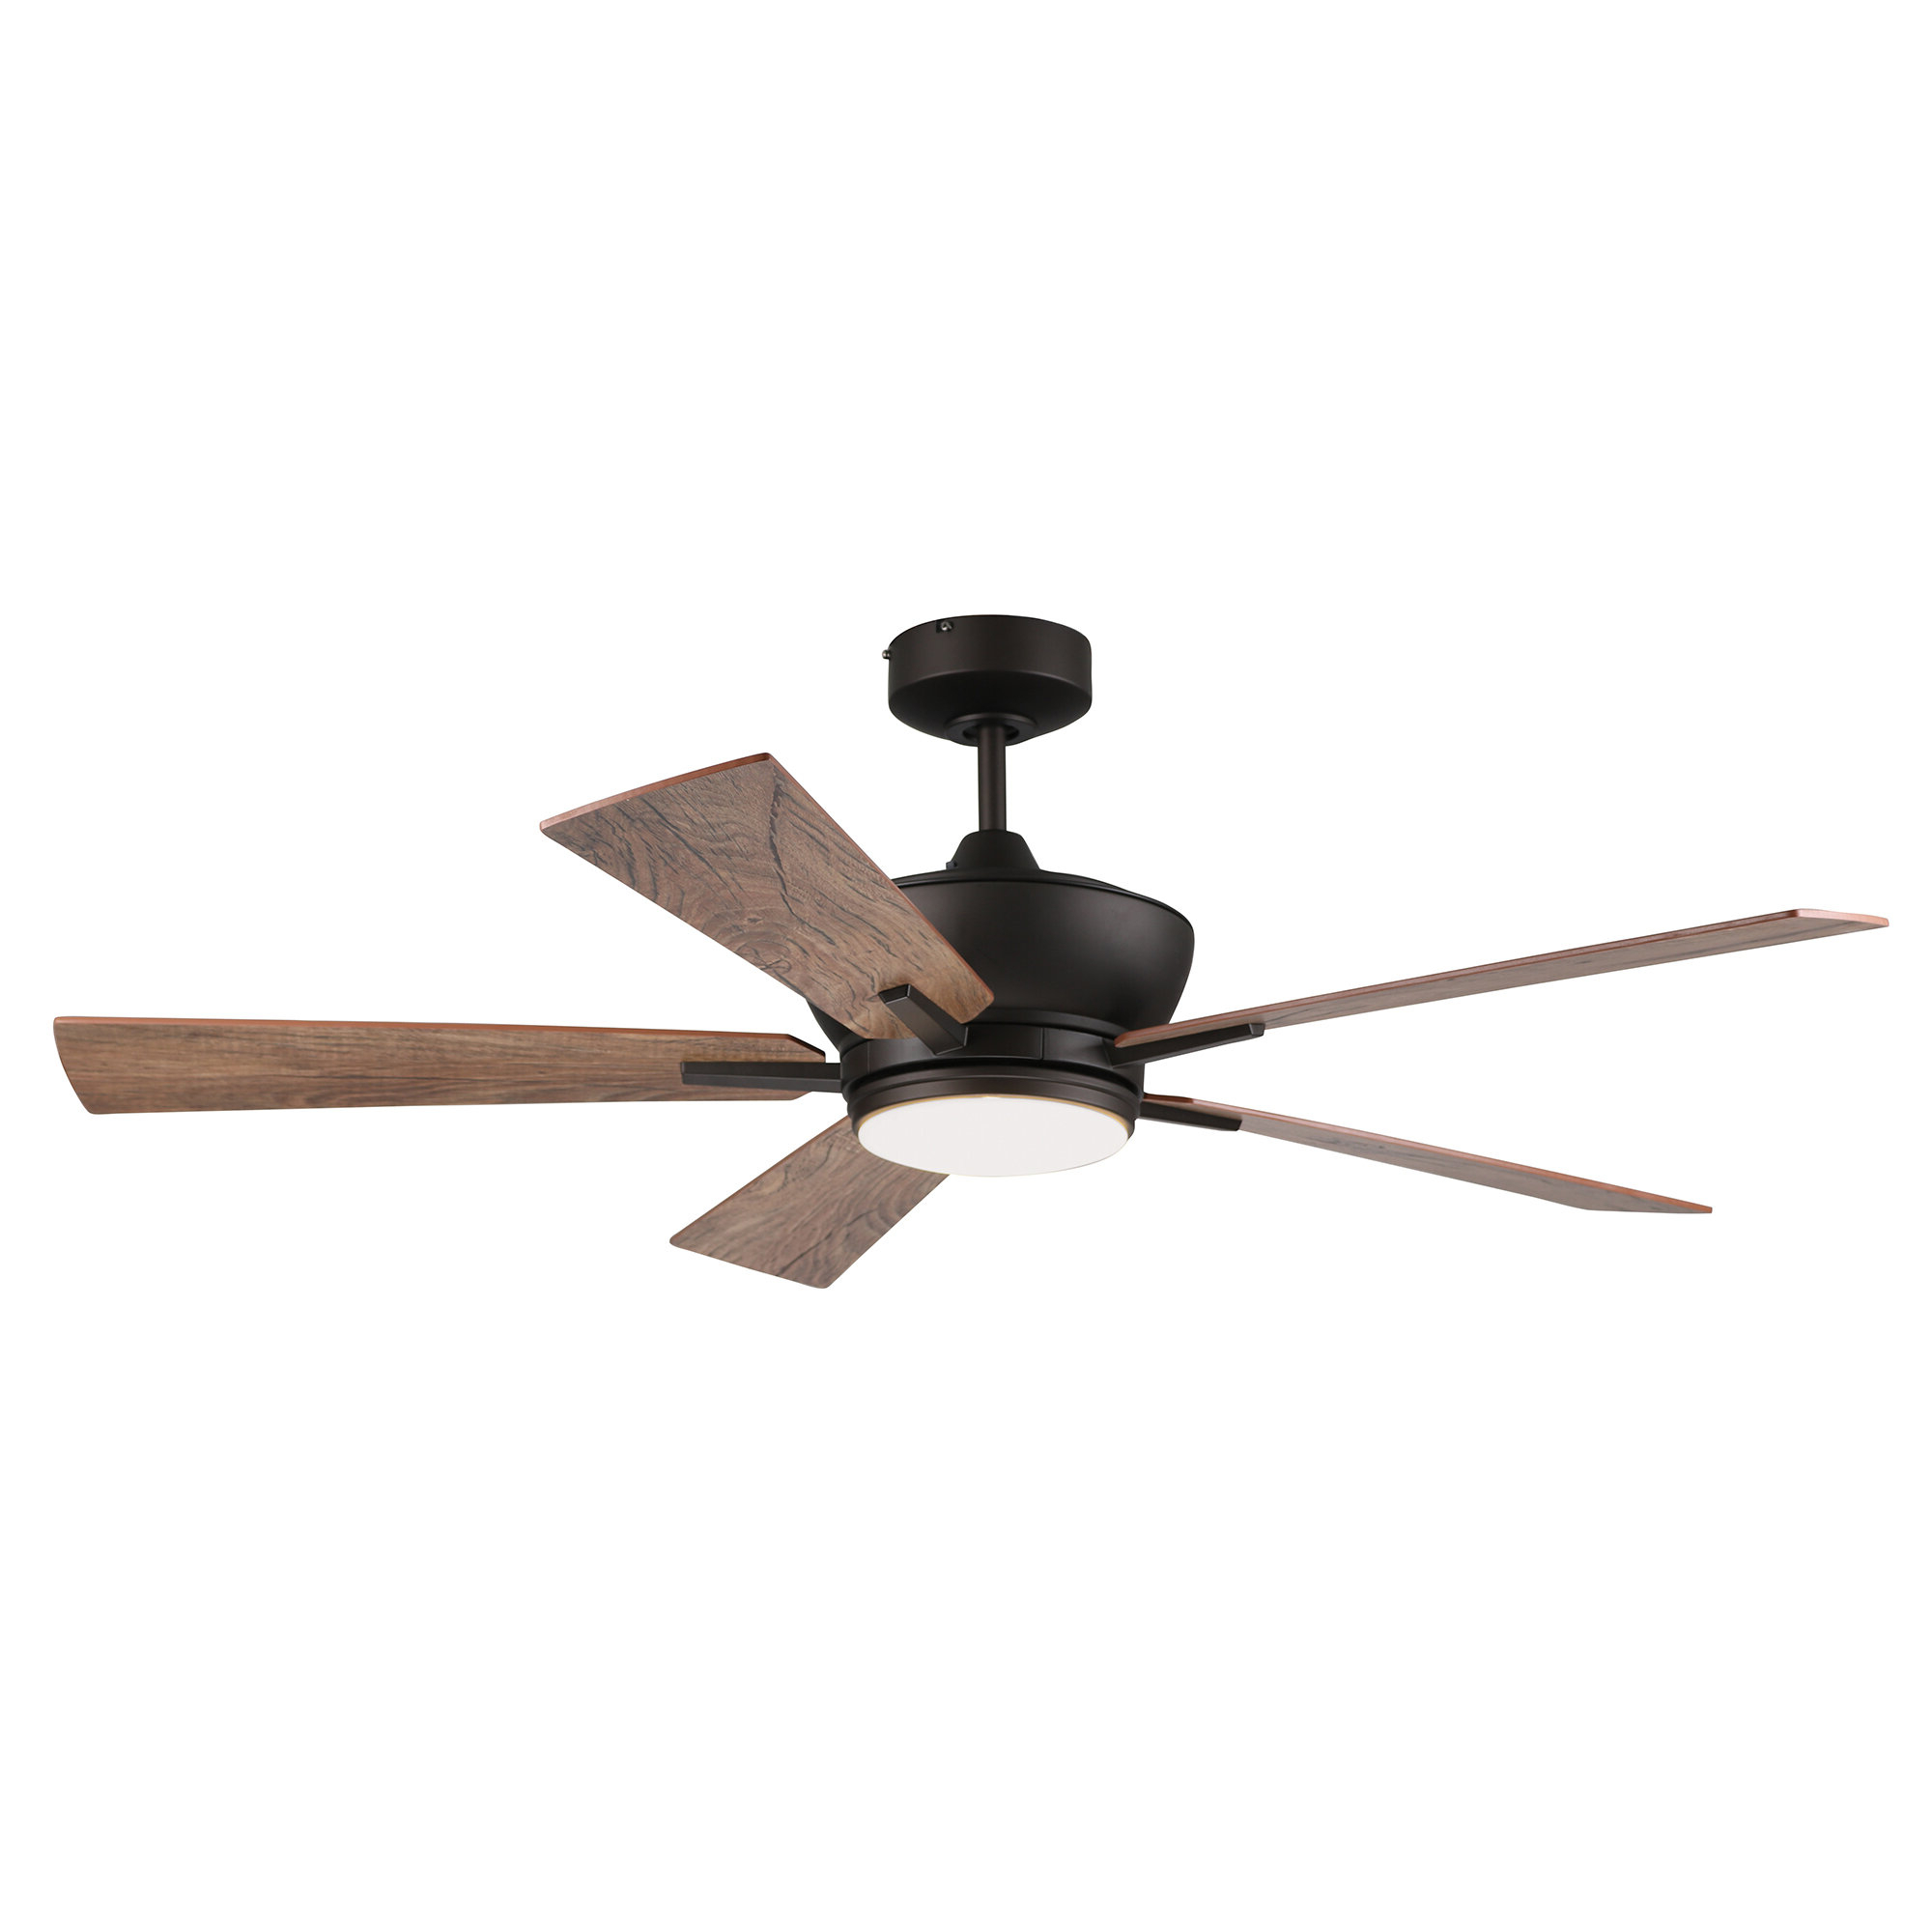 """Marcoux 5 Blade Ceiling Fans With 2020 52"""" Georgetown Tri Mount 5 Blade Ceiling Fan With Remote, Light Kit Included (View 3 of 20)"""